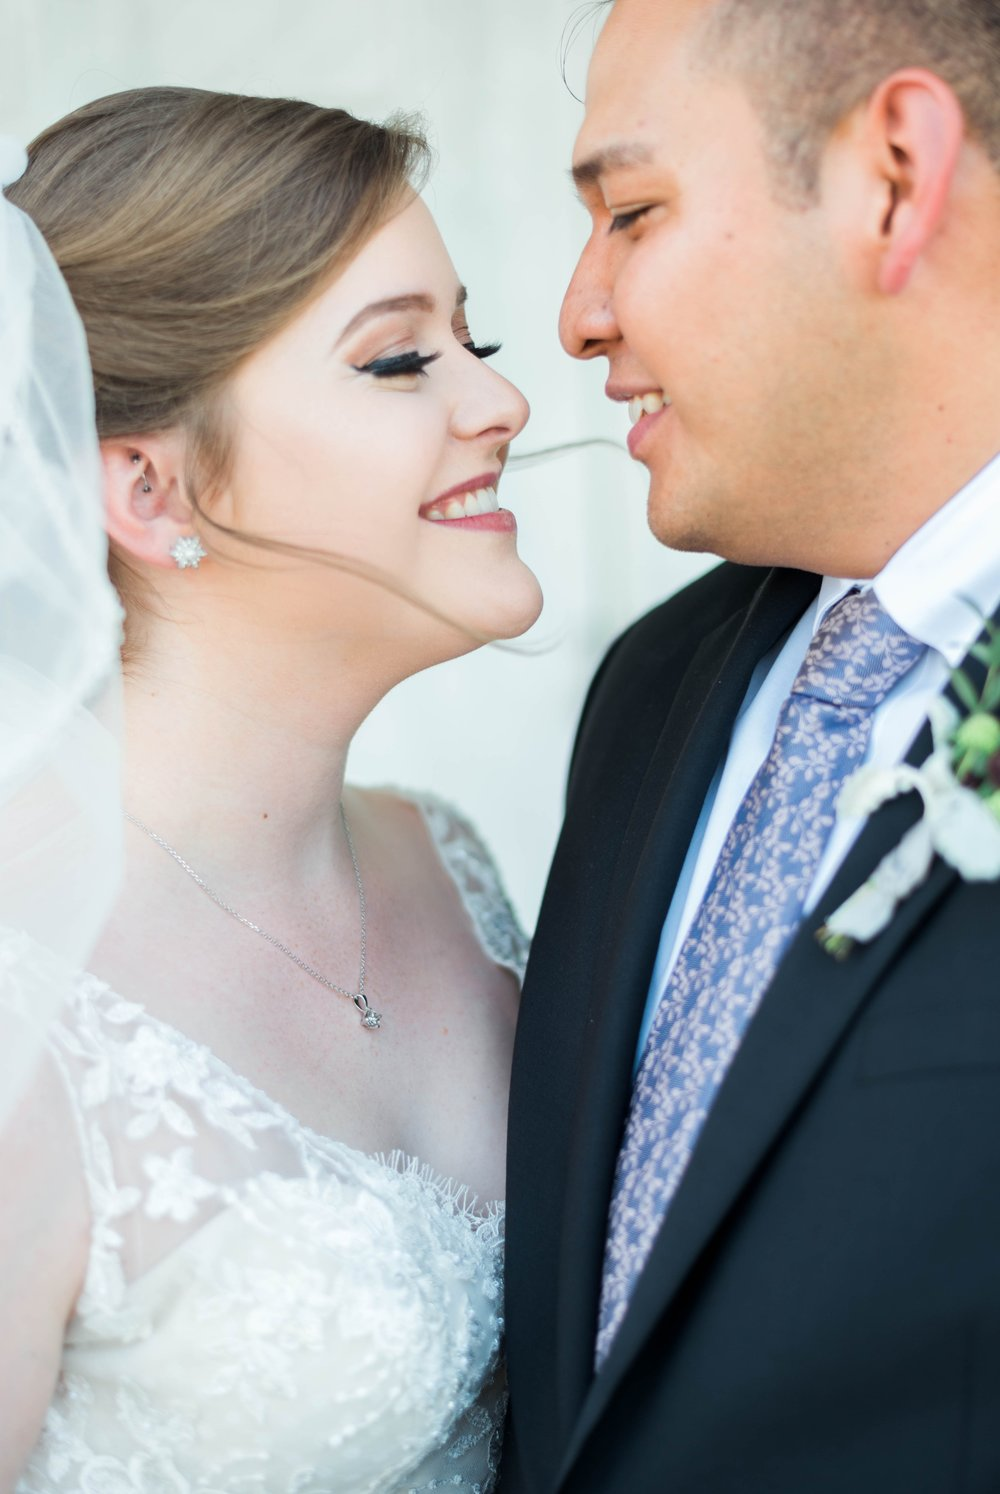 Jillian+Abi_OakridgeEstate_Wedding_VirginiaWeddingPhotographer_SpringWedding 17.jpg